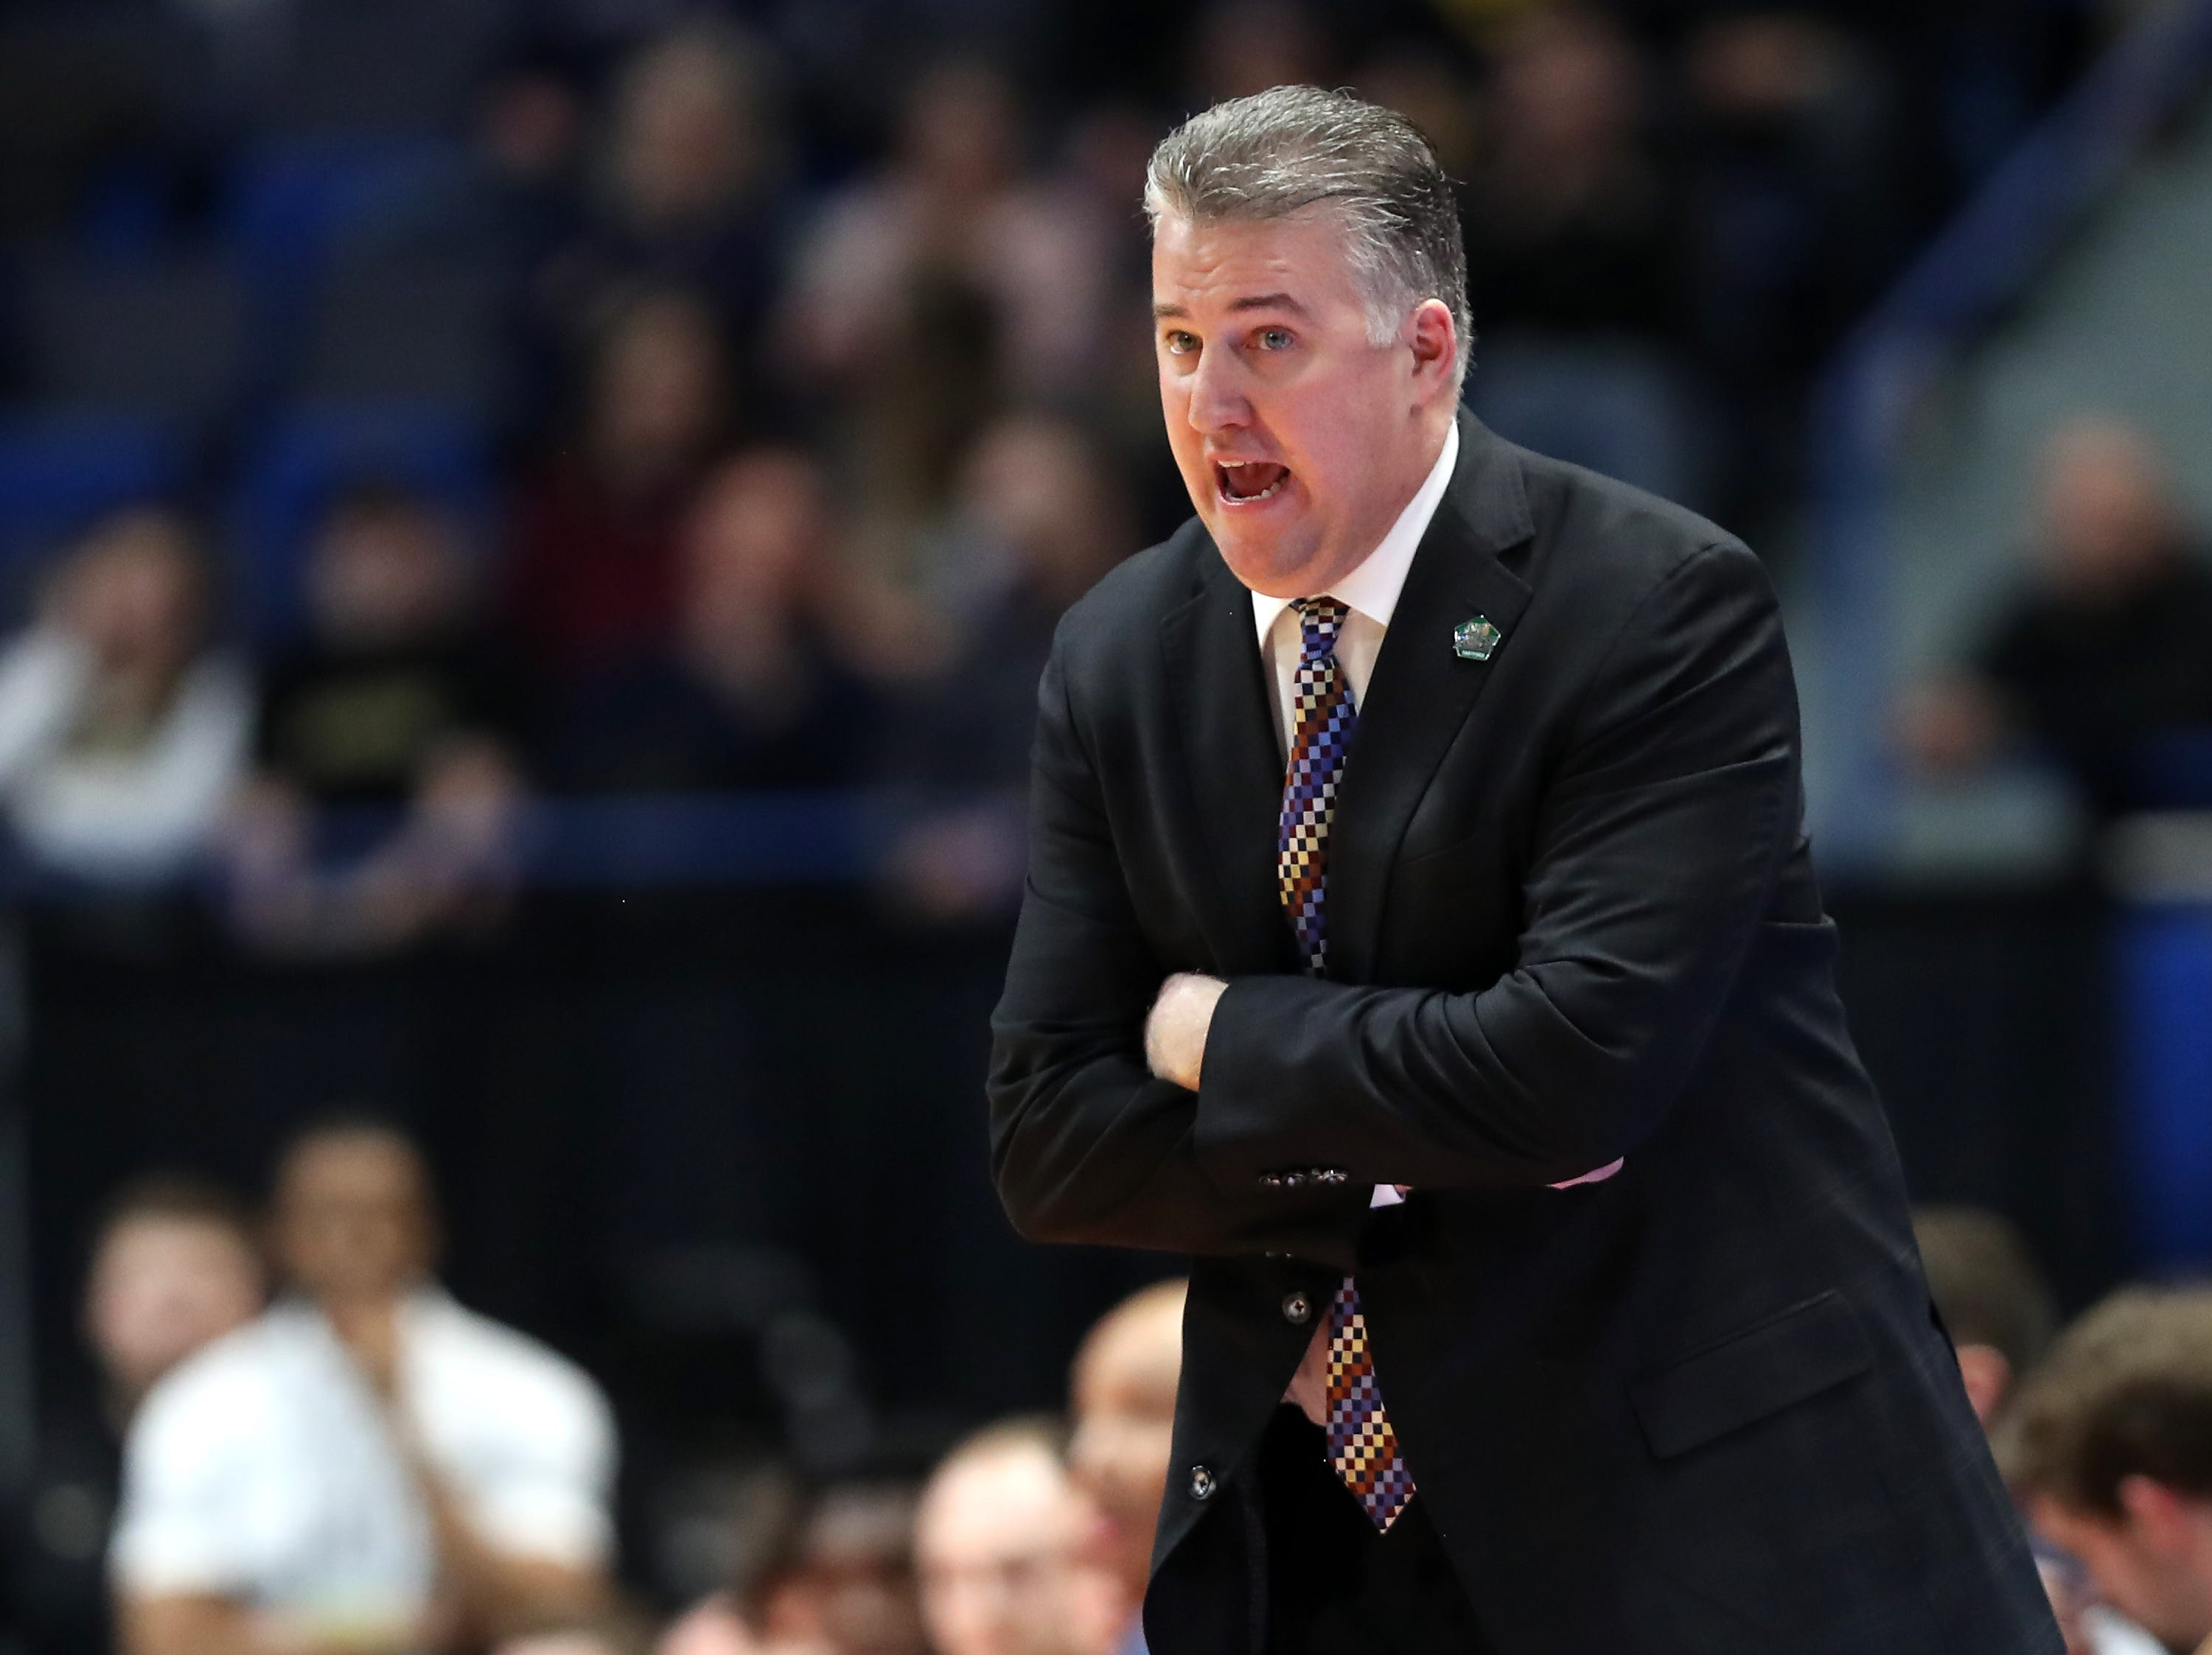 Head coach Matt Painter of the Purdue Boilermakers looks on in the first half against the Old Dominion Monarchs during the 2019 NCAA Men's Basketball Tournament at XL Center on March 21, 2019 in Hartford, Connecticut.